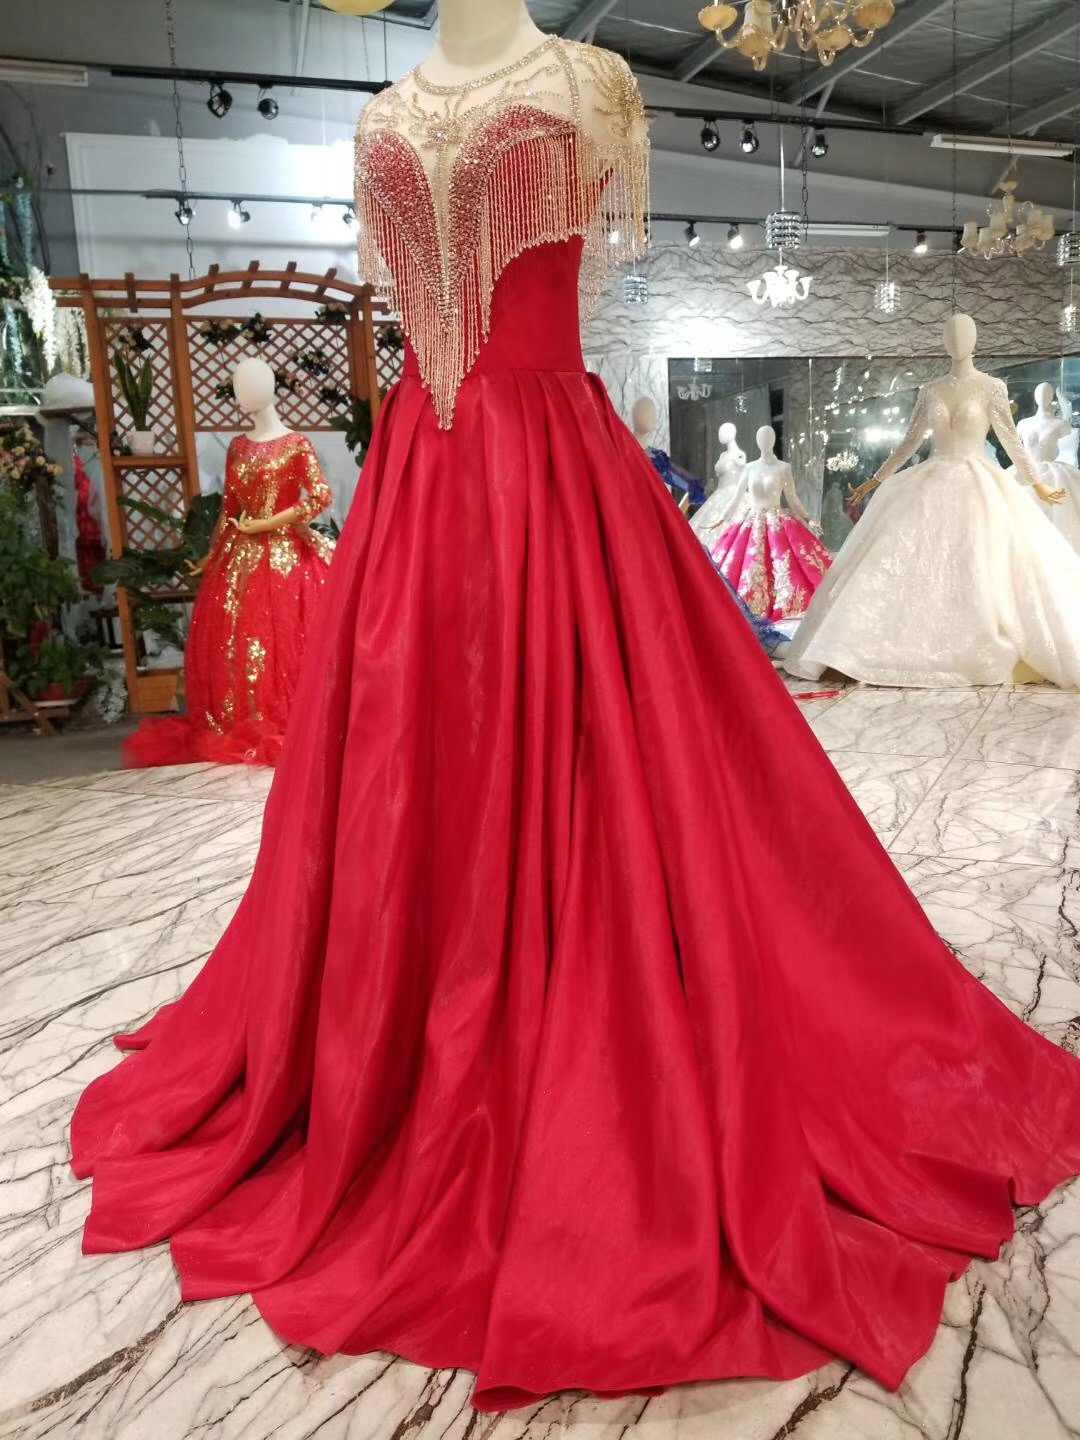 b2e5a23271 Simple Aqua Quinceanera Dresses Telass Crystals Beads Prom Dresses For 15  16 17 Years Red Satin Party Gown